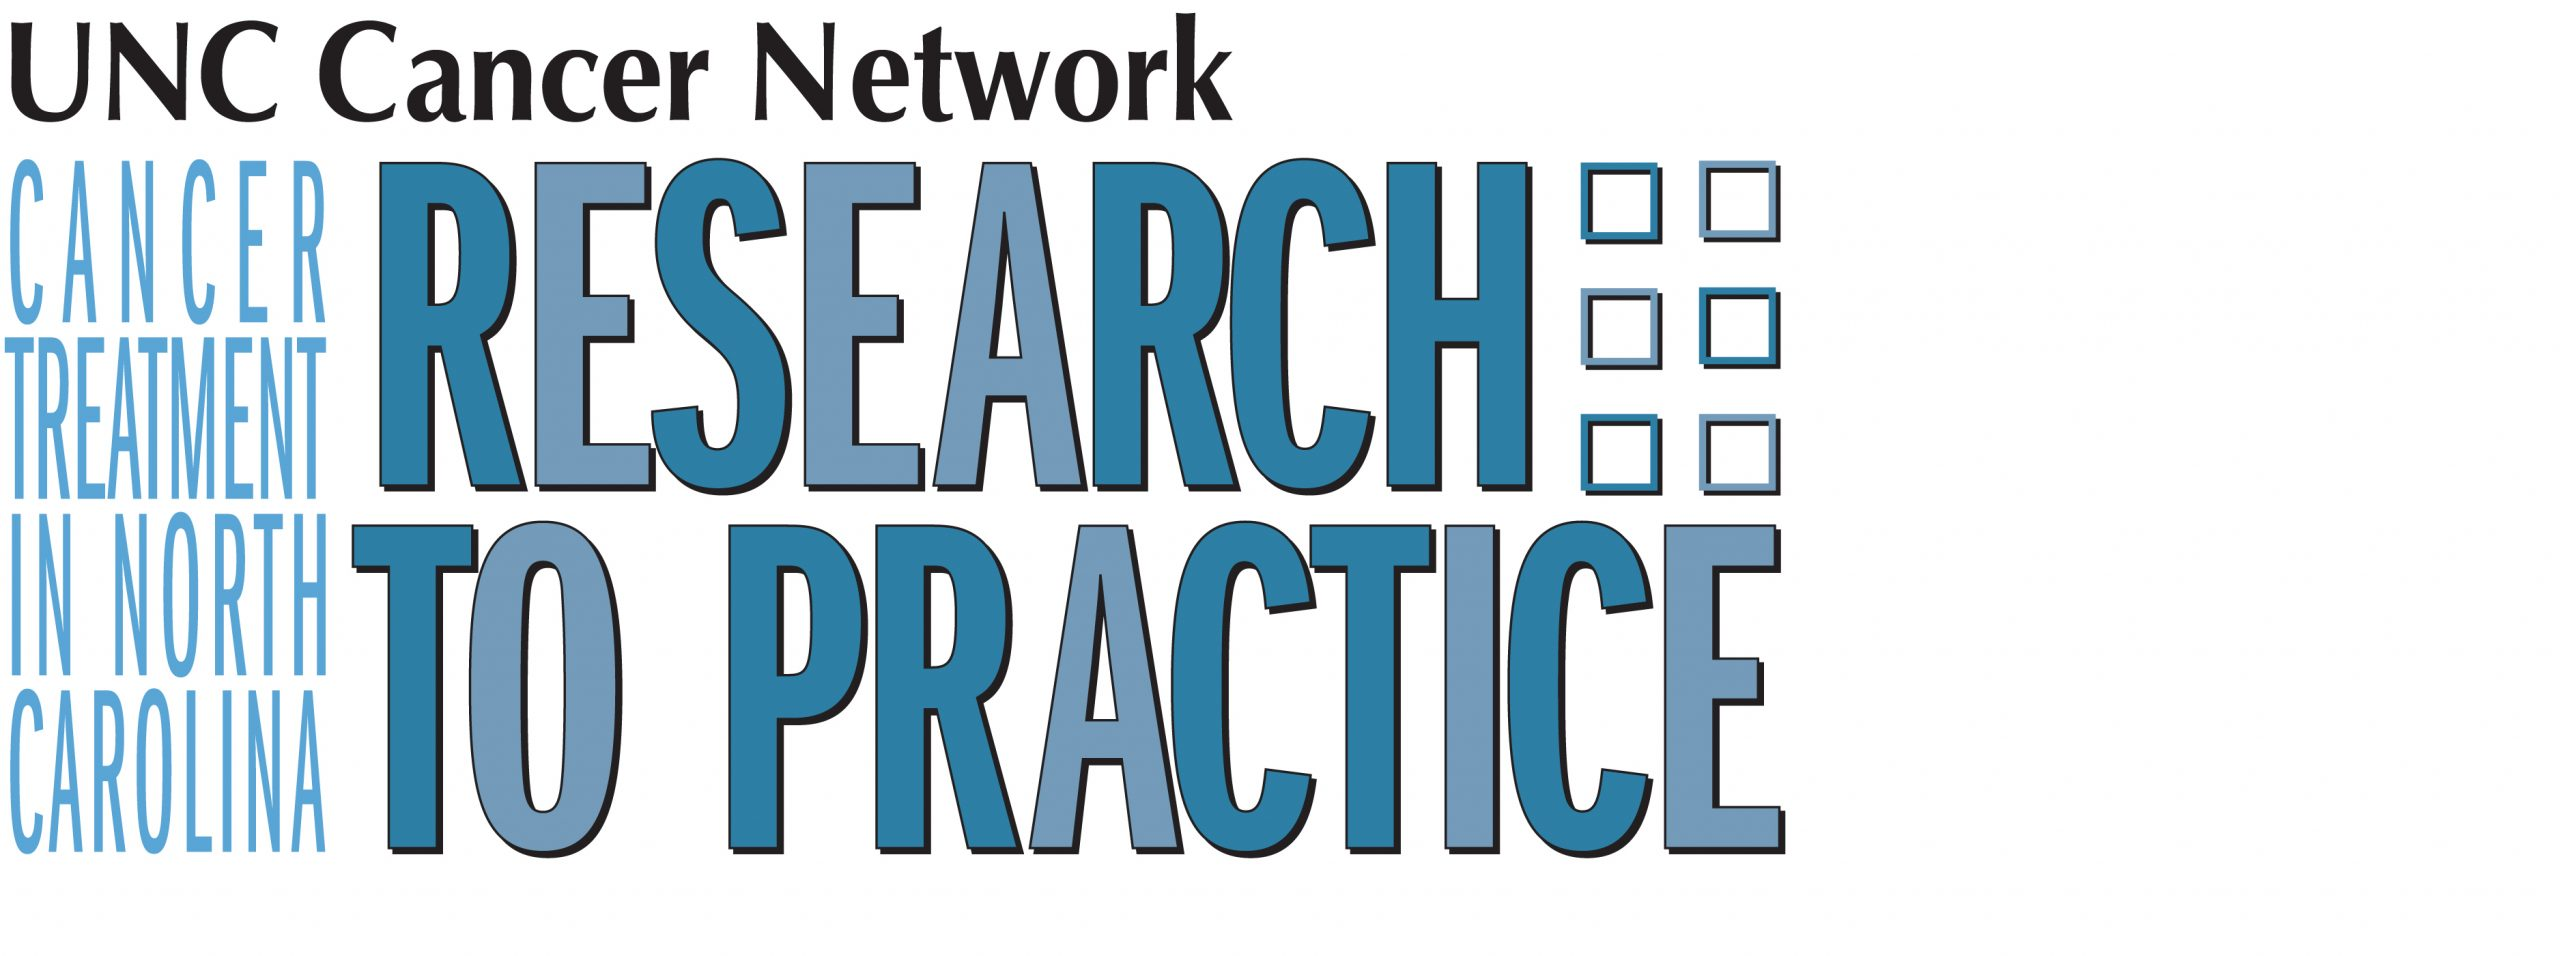 Research to Practice Logo